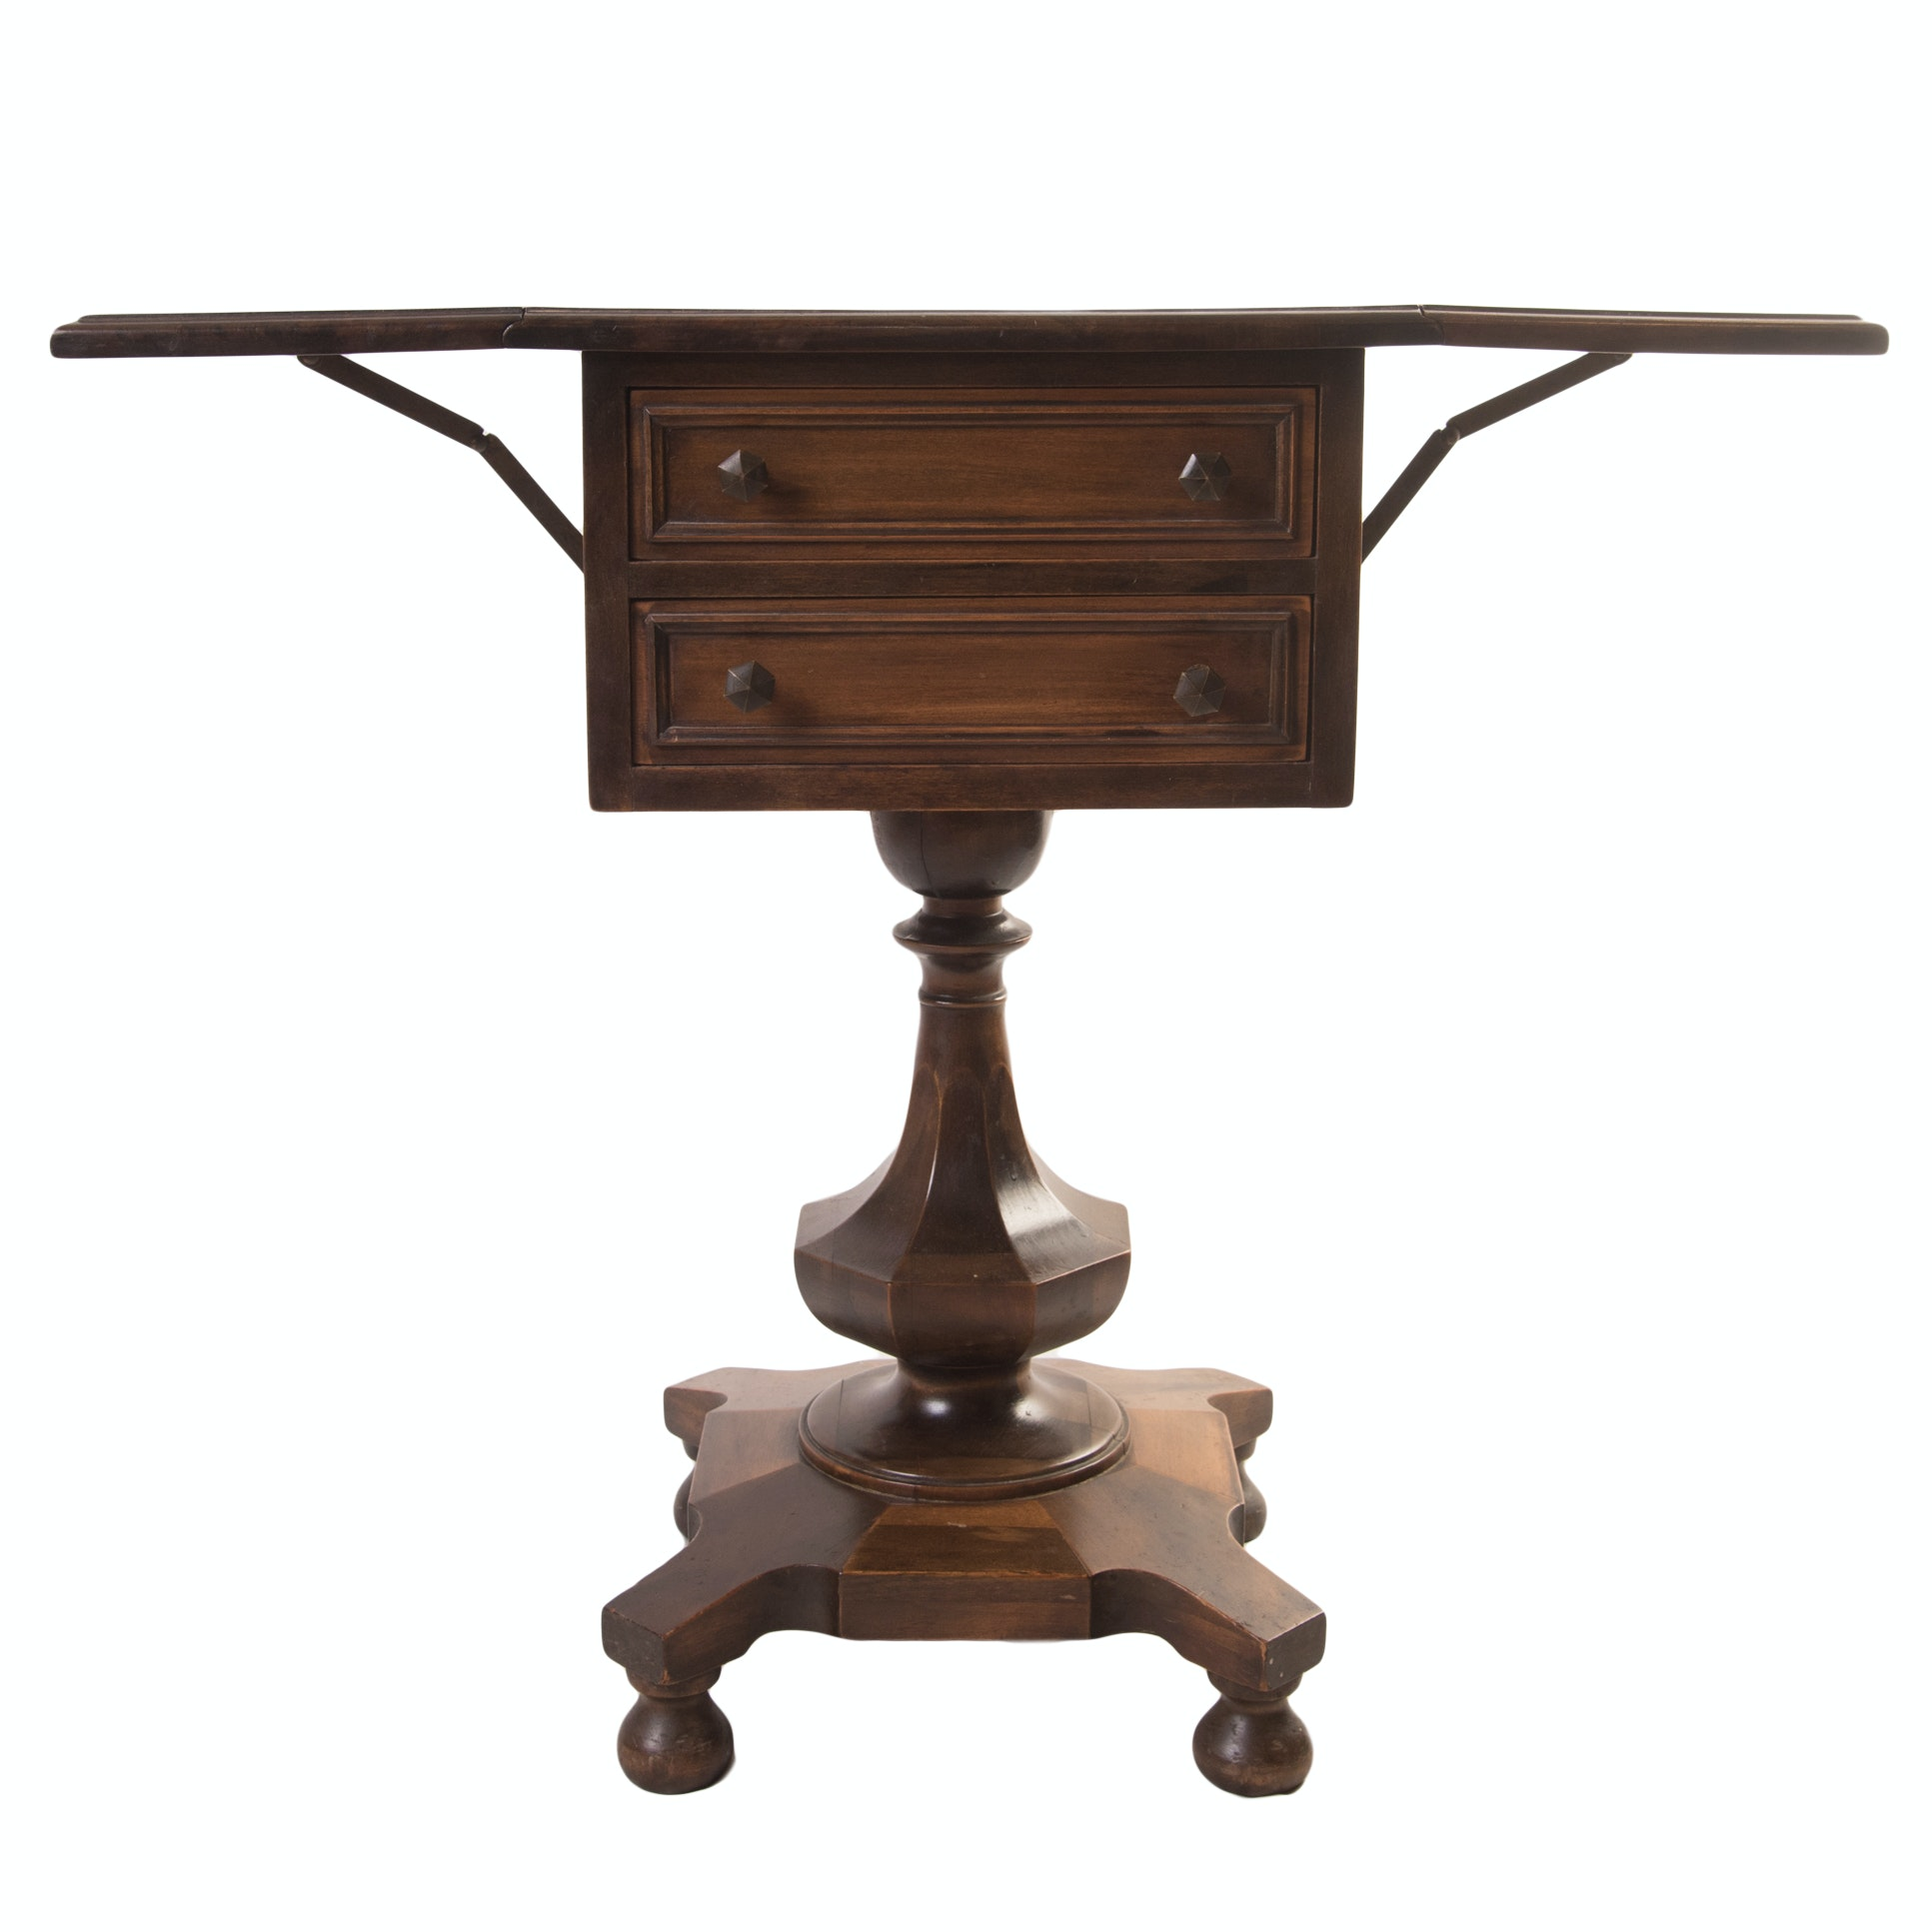 Antique Empire Style Sewing Stand